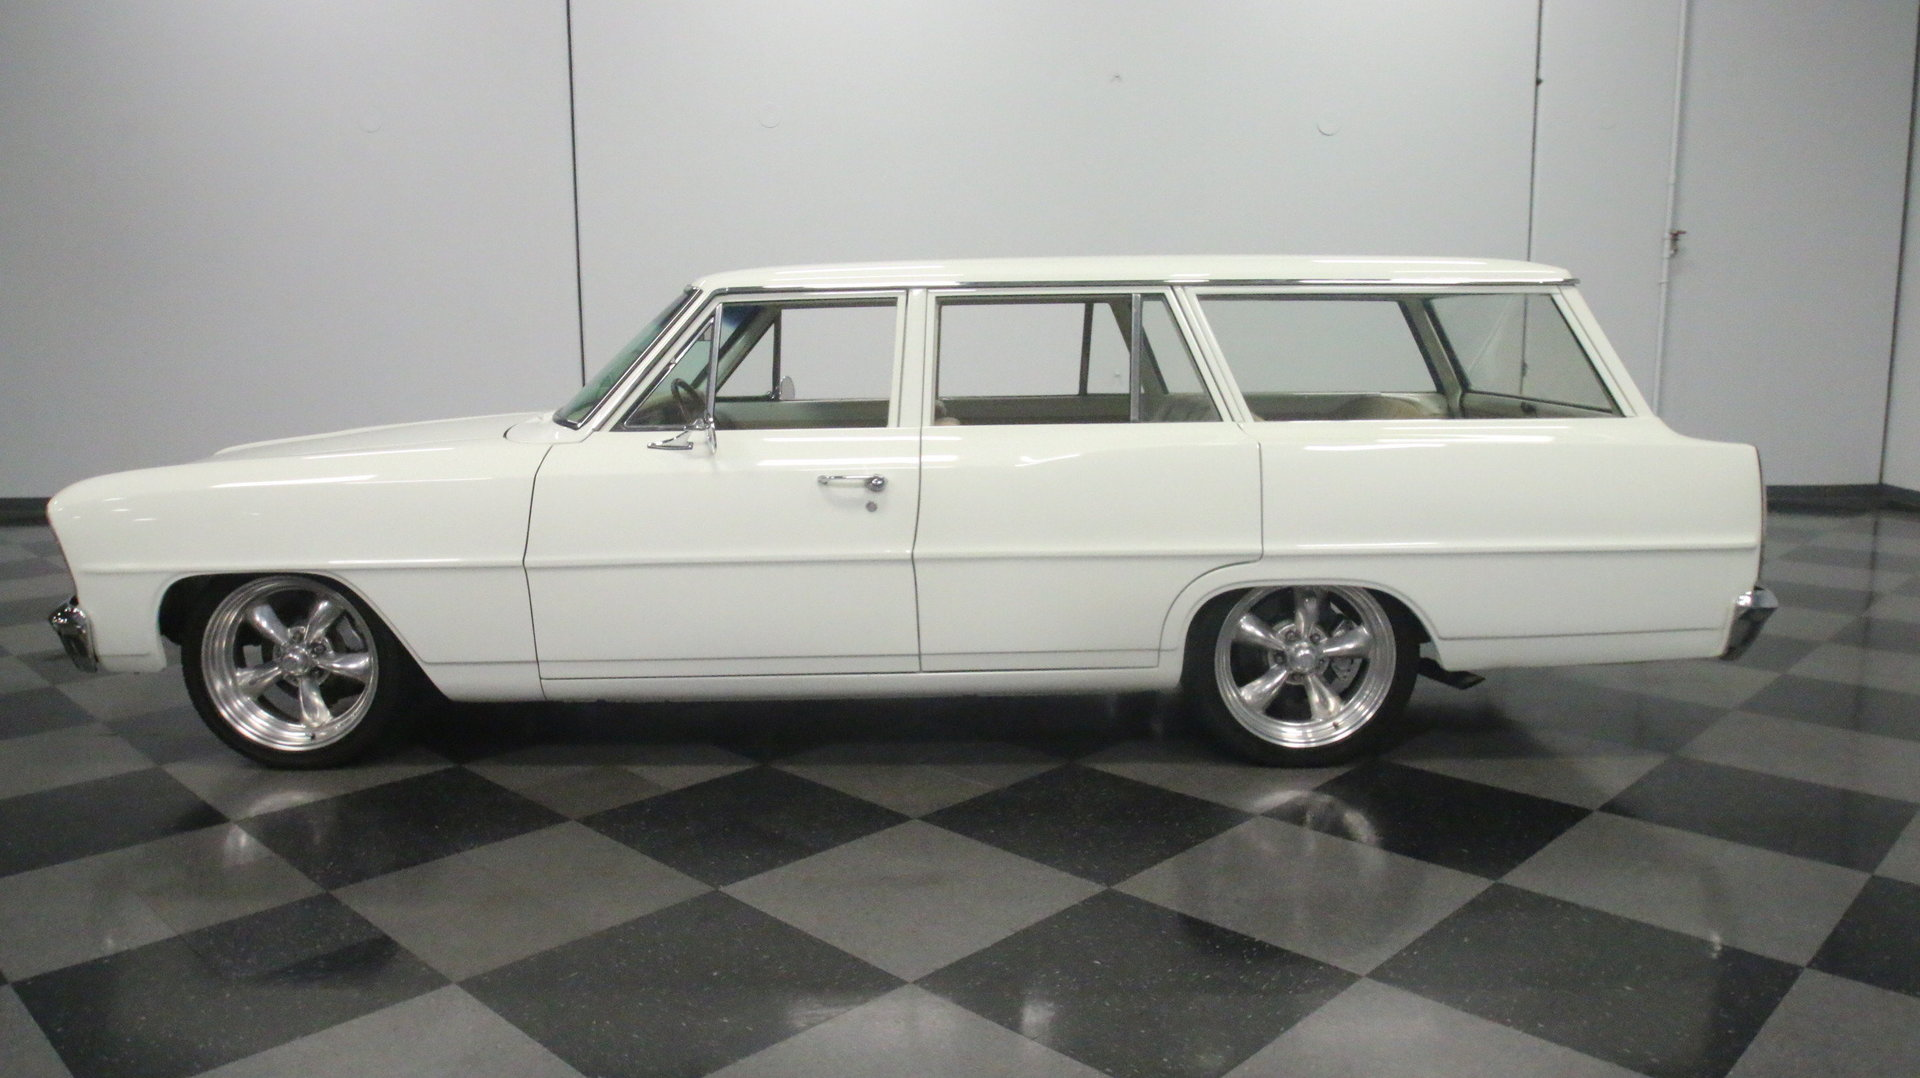 1966 Chevrolet Nova Streetside Classics The Nations Trusted Station Wagon View 360